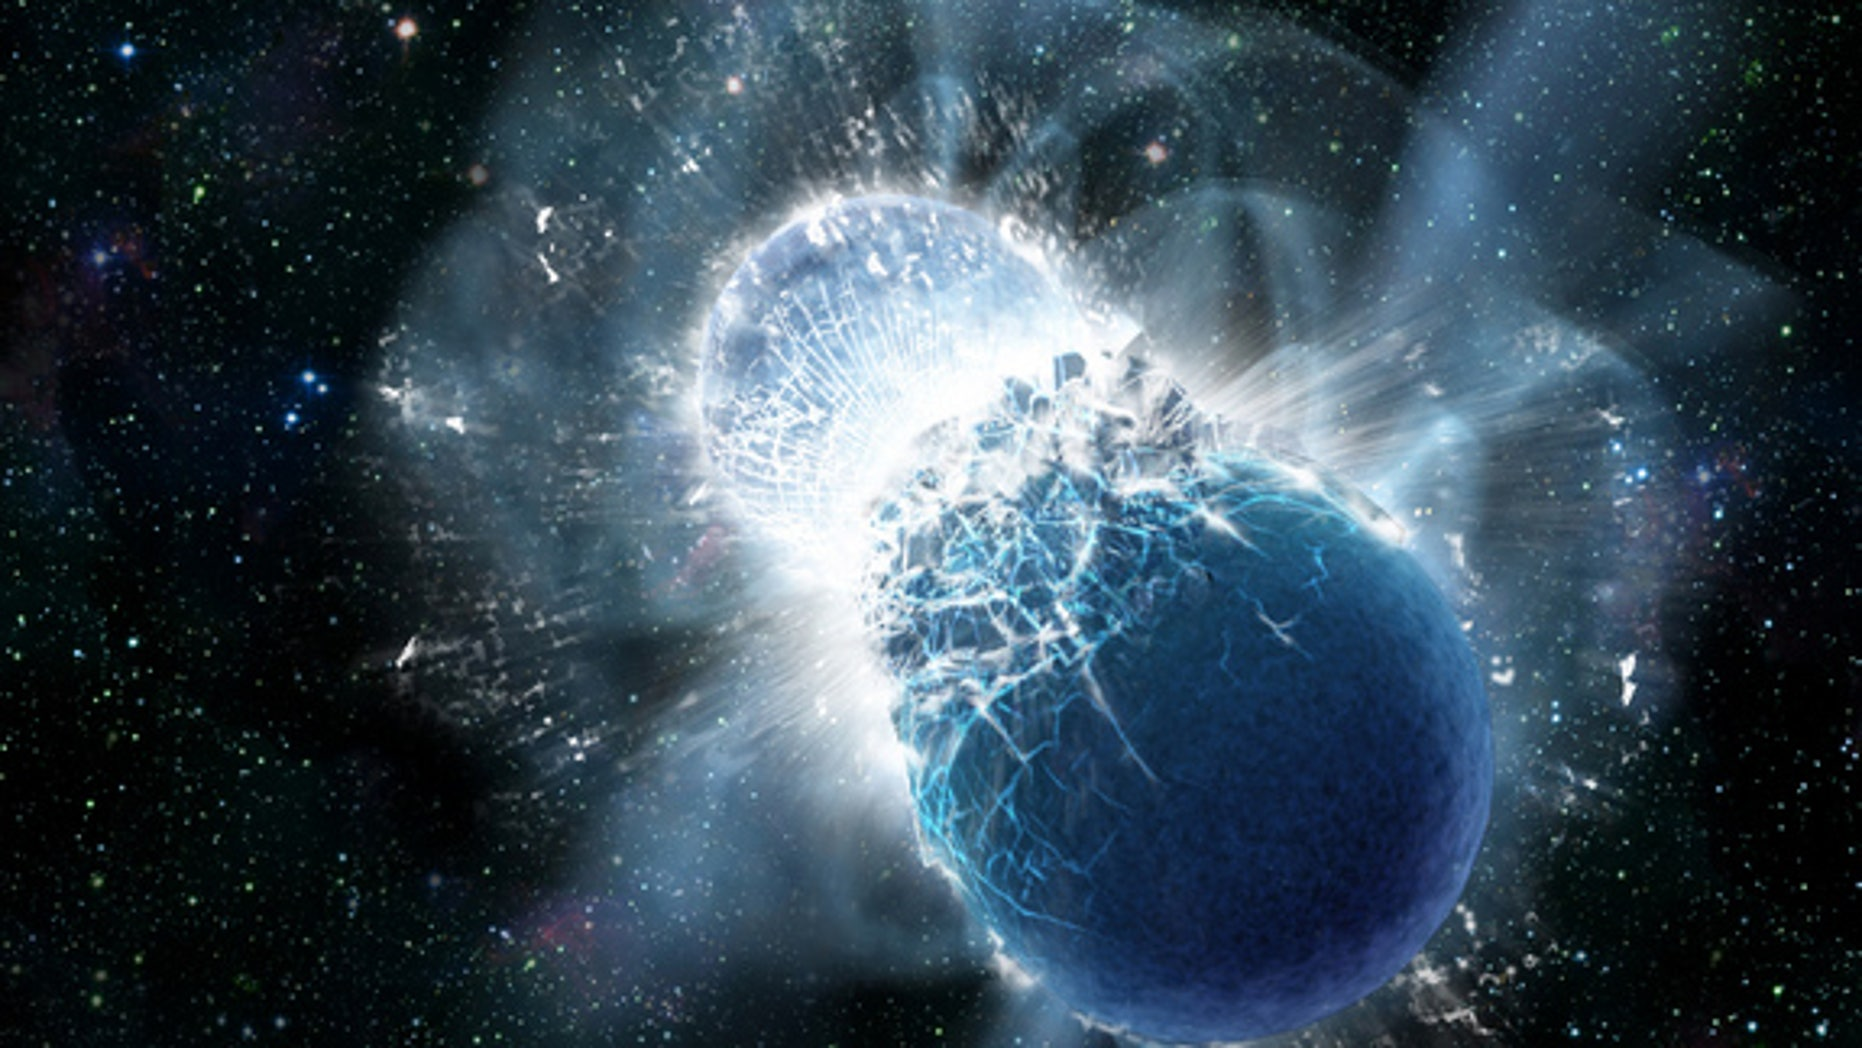 The collision of two neutron stars can create rare elements like gold. Image released on July 17, 2013.